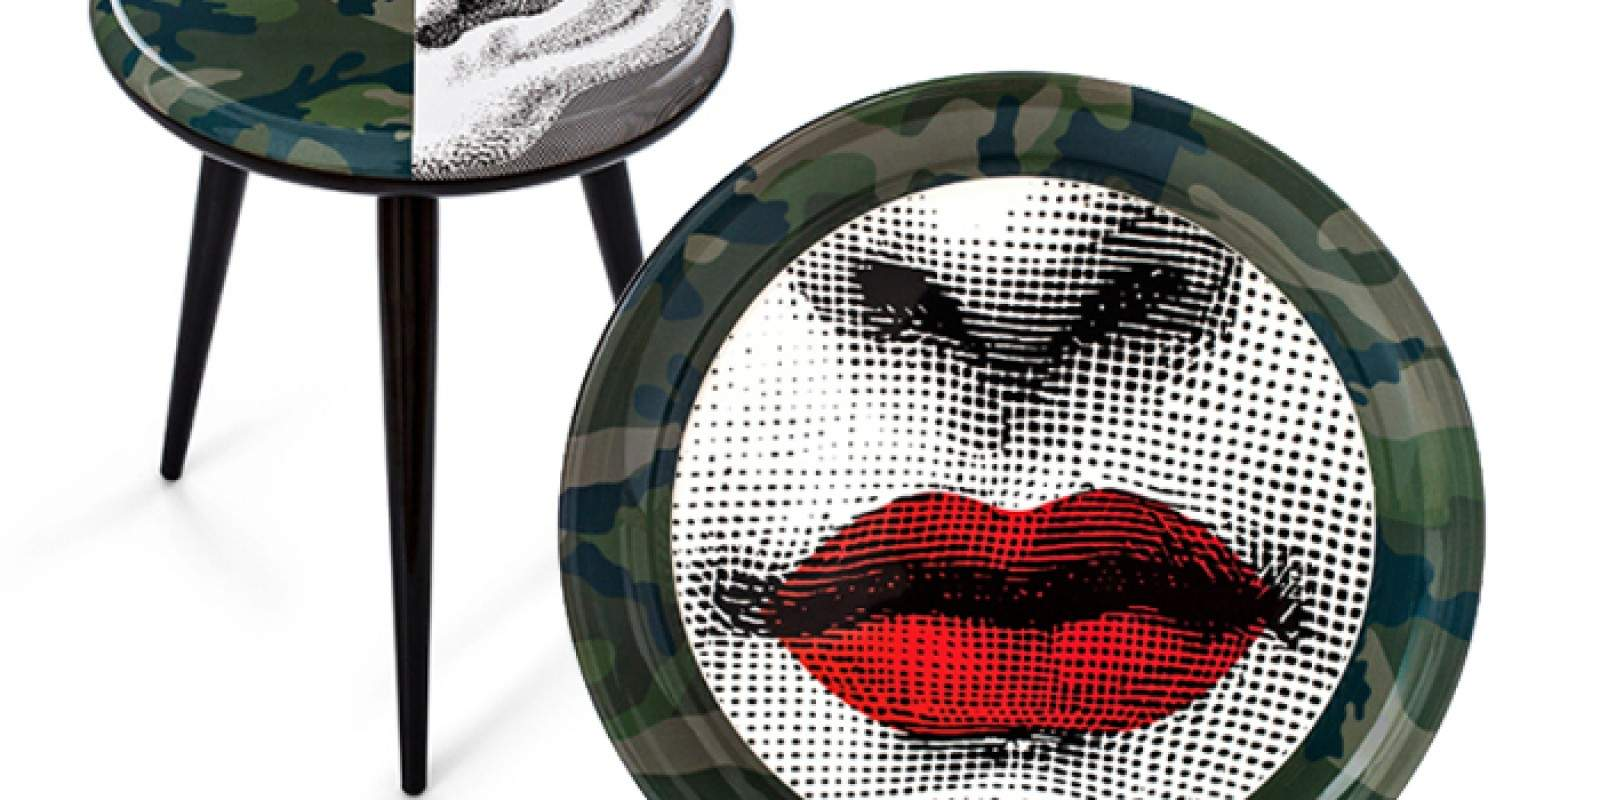 fornasetti x valentino limited edition objects collection deco design. Black Bedroom Furniture Sets. Home Design Ideas